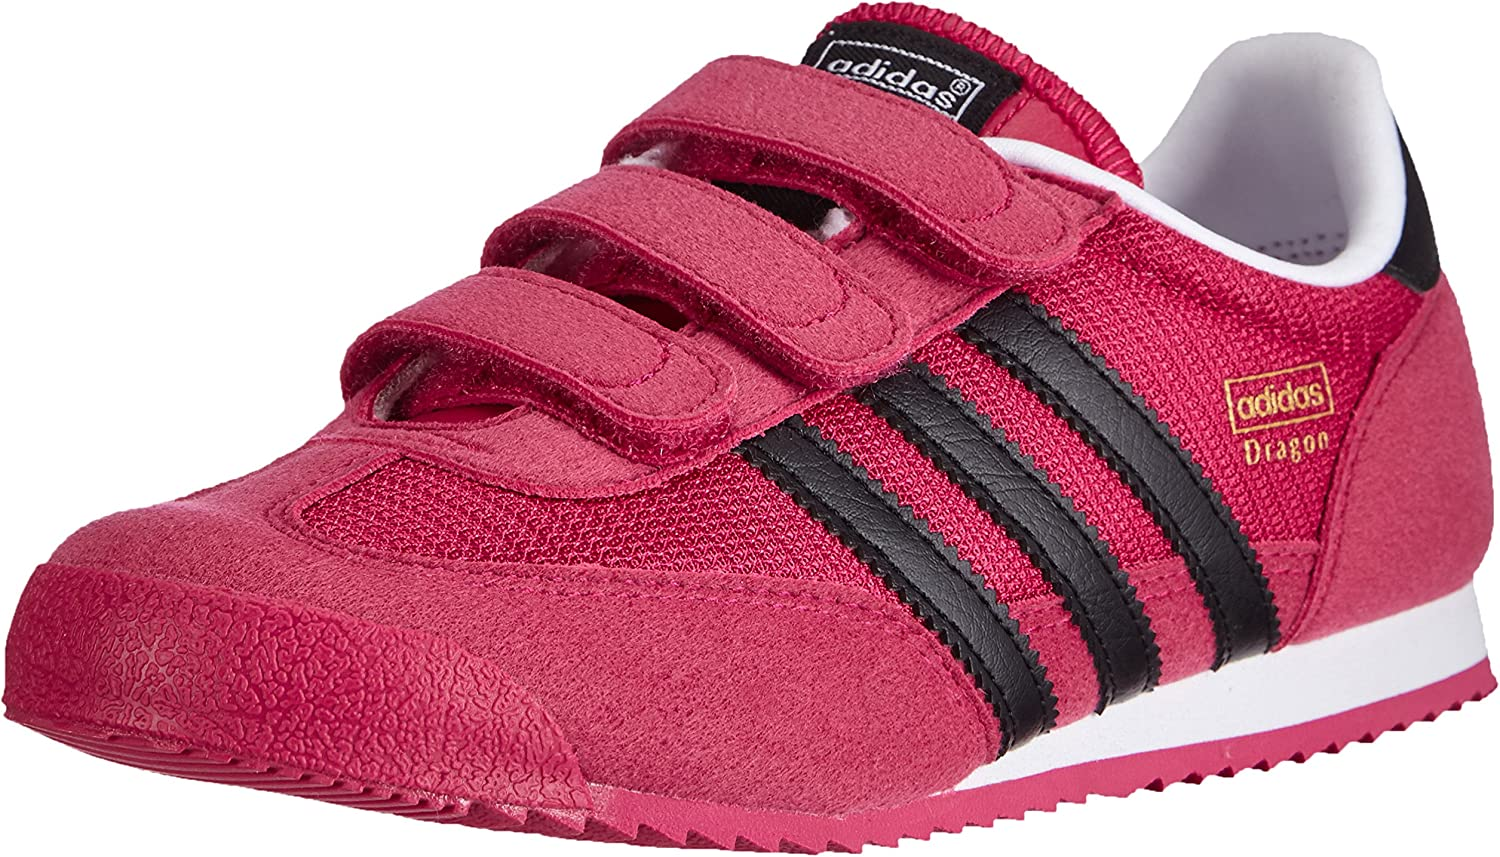 Adidas Dragon, Girls' Running shoes